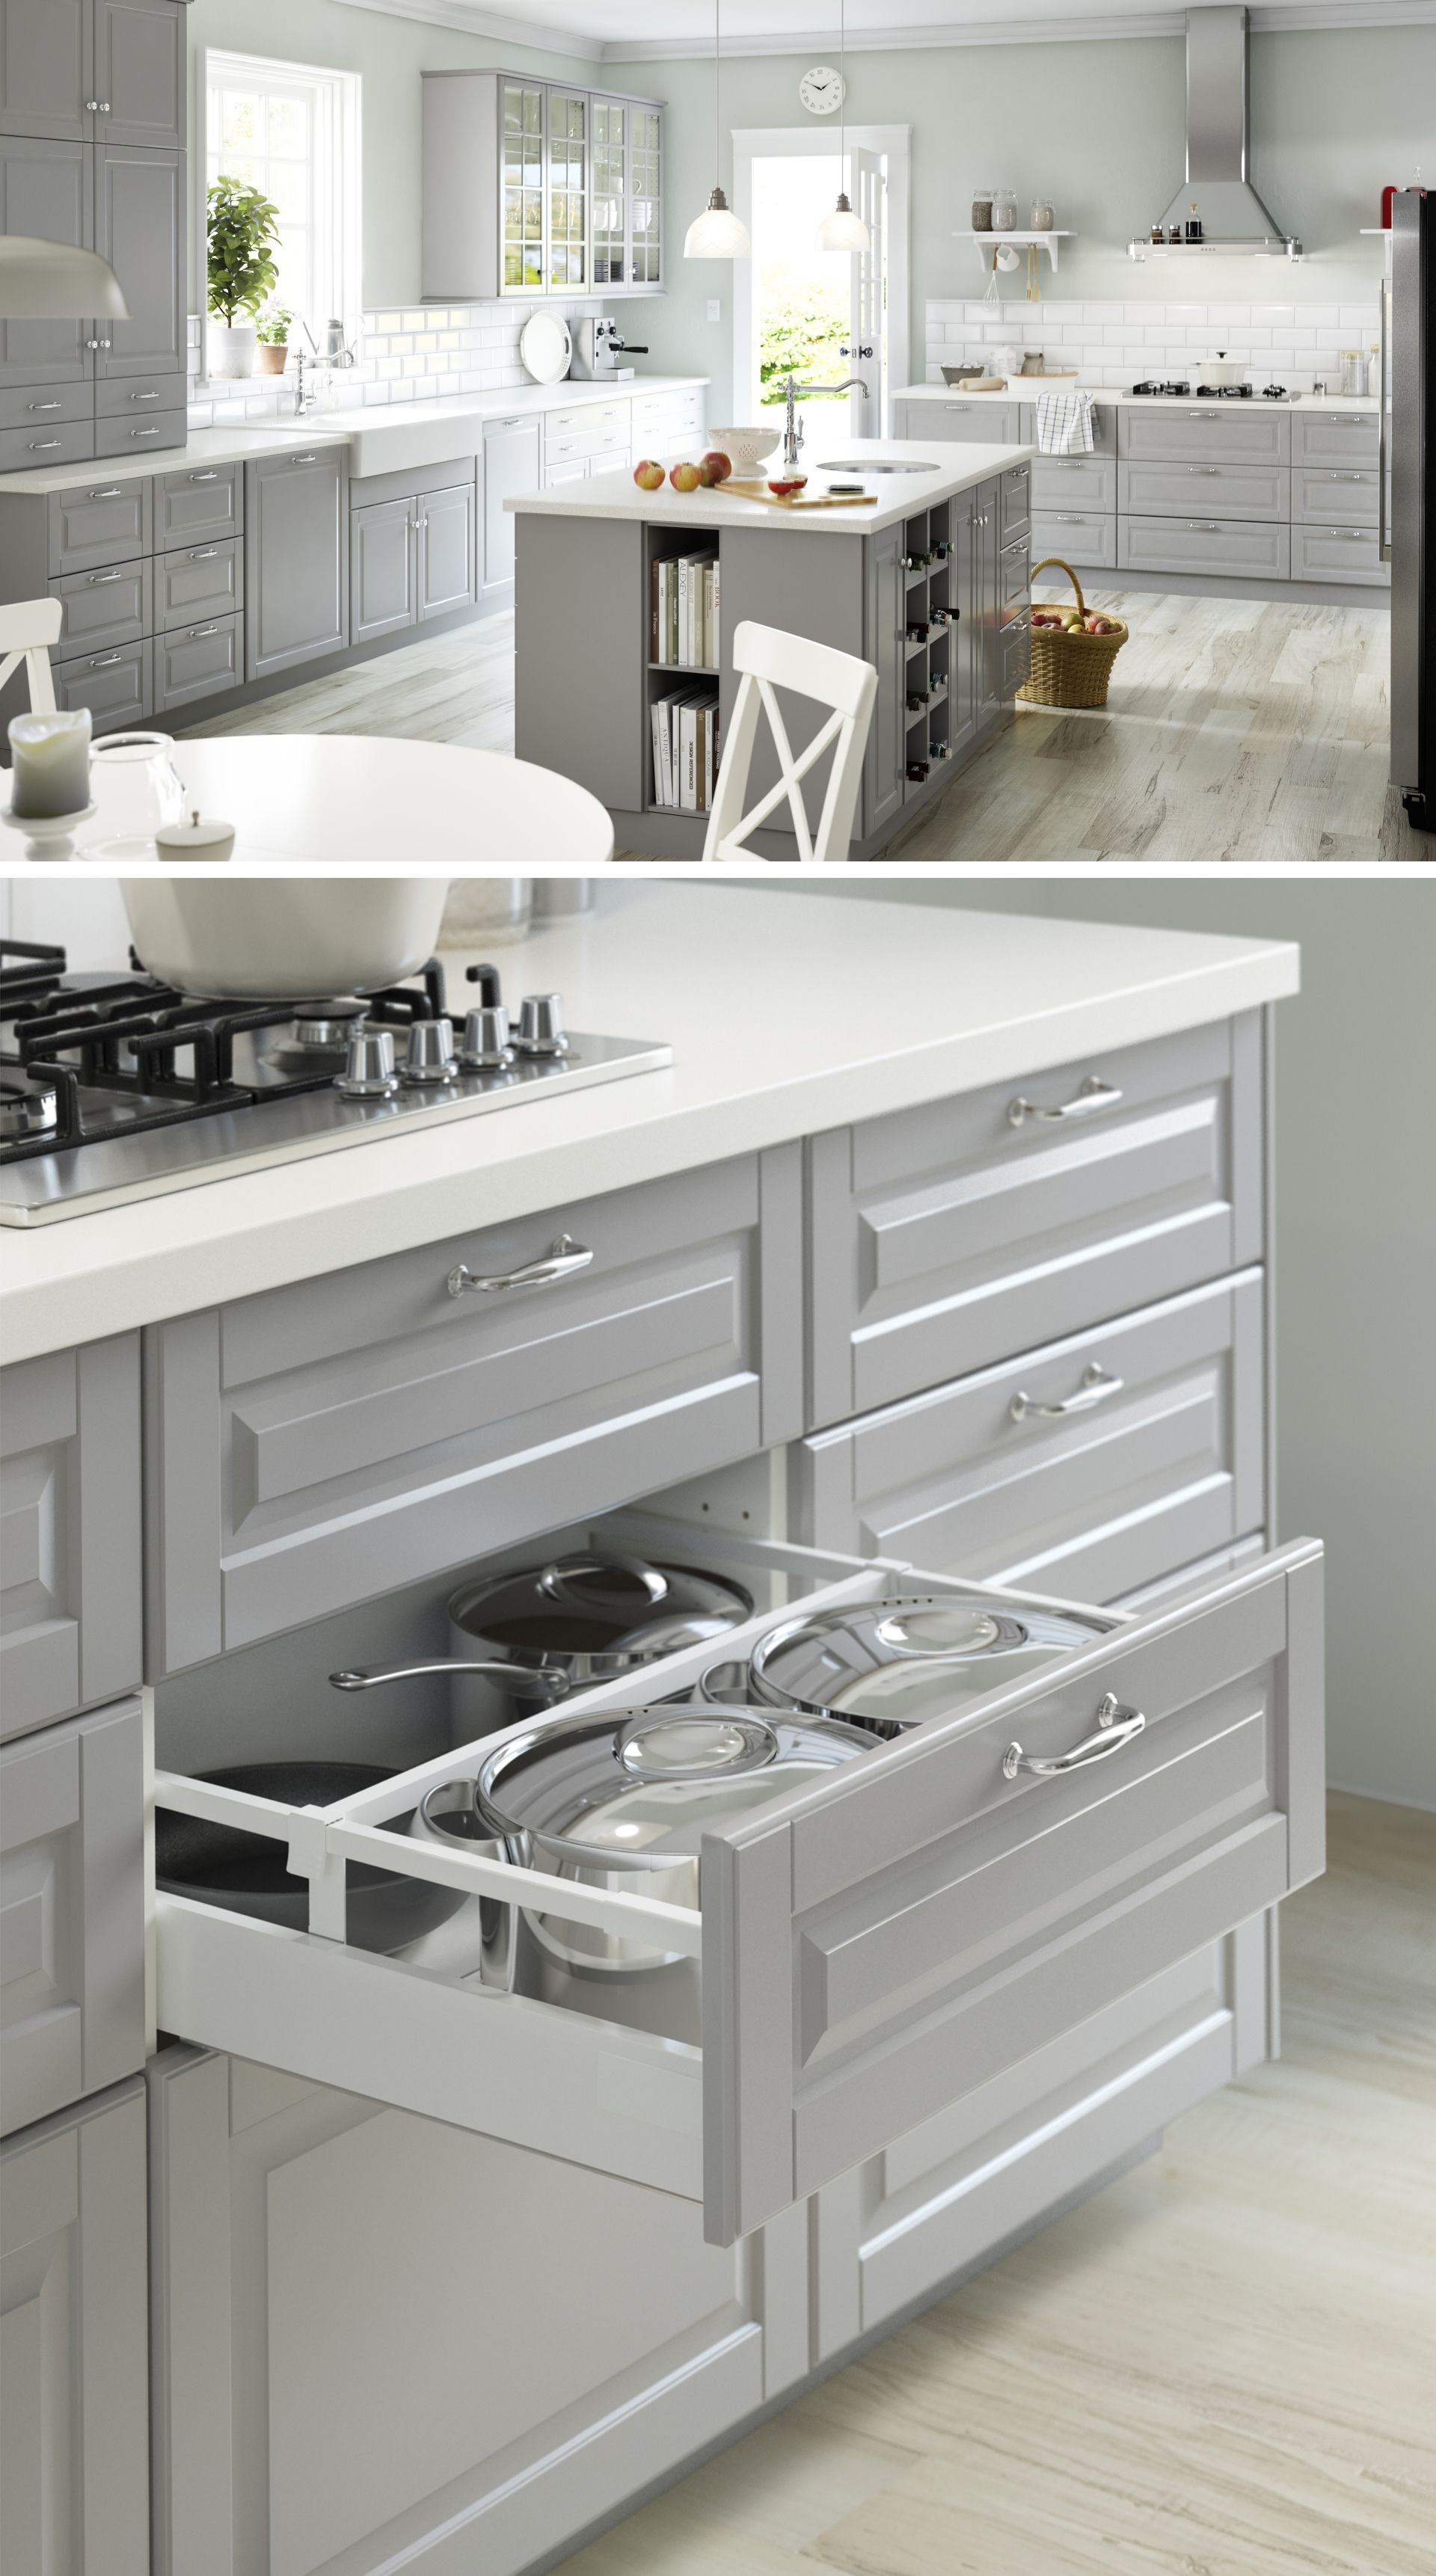 20+ Gorgeous Gray and White Kitchens | Grey kitchen island, Gray ...